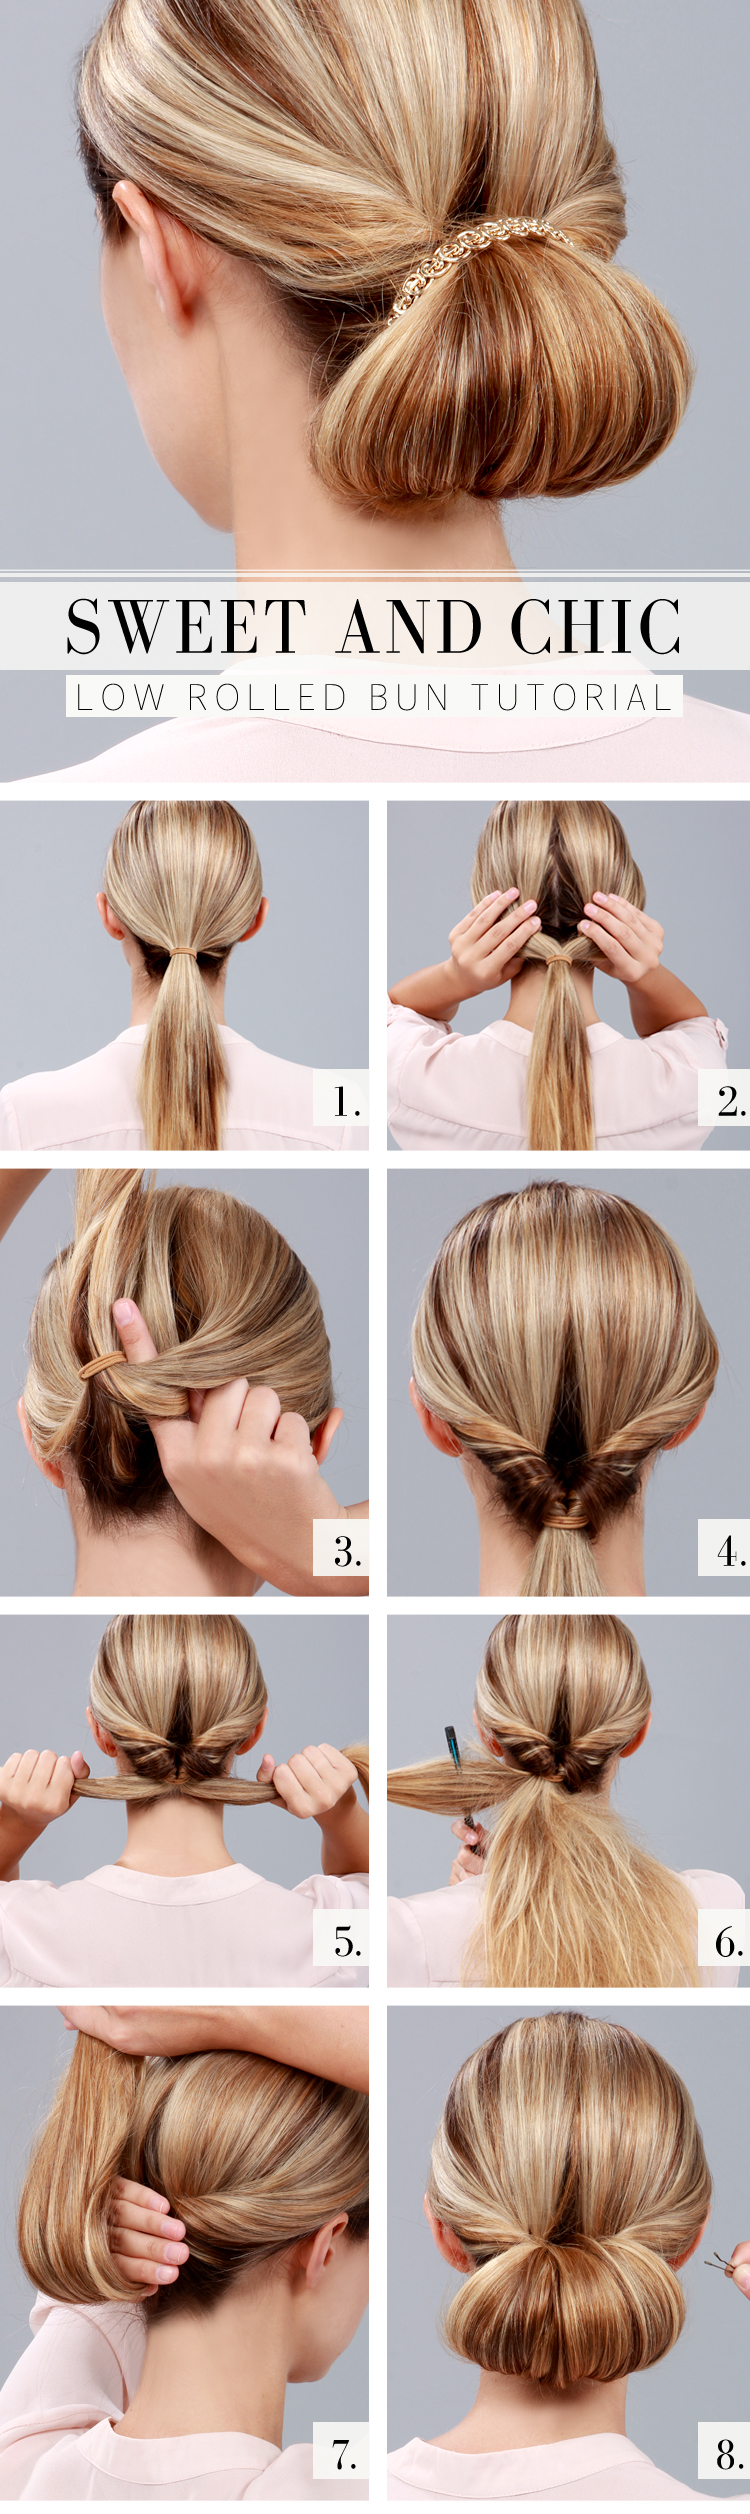 Lulus how to chic low rolled bun tutorial lulus fashion blog lulus how to chic low rolled bun tutorial at lulus baditri Gallery